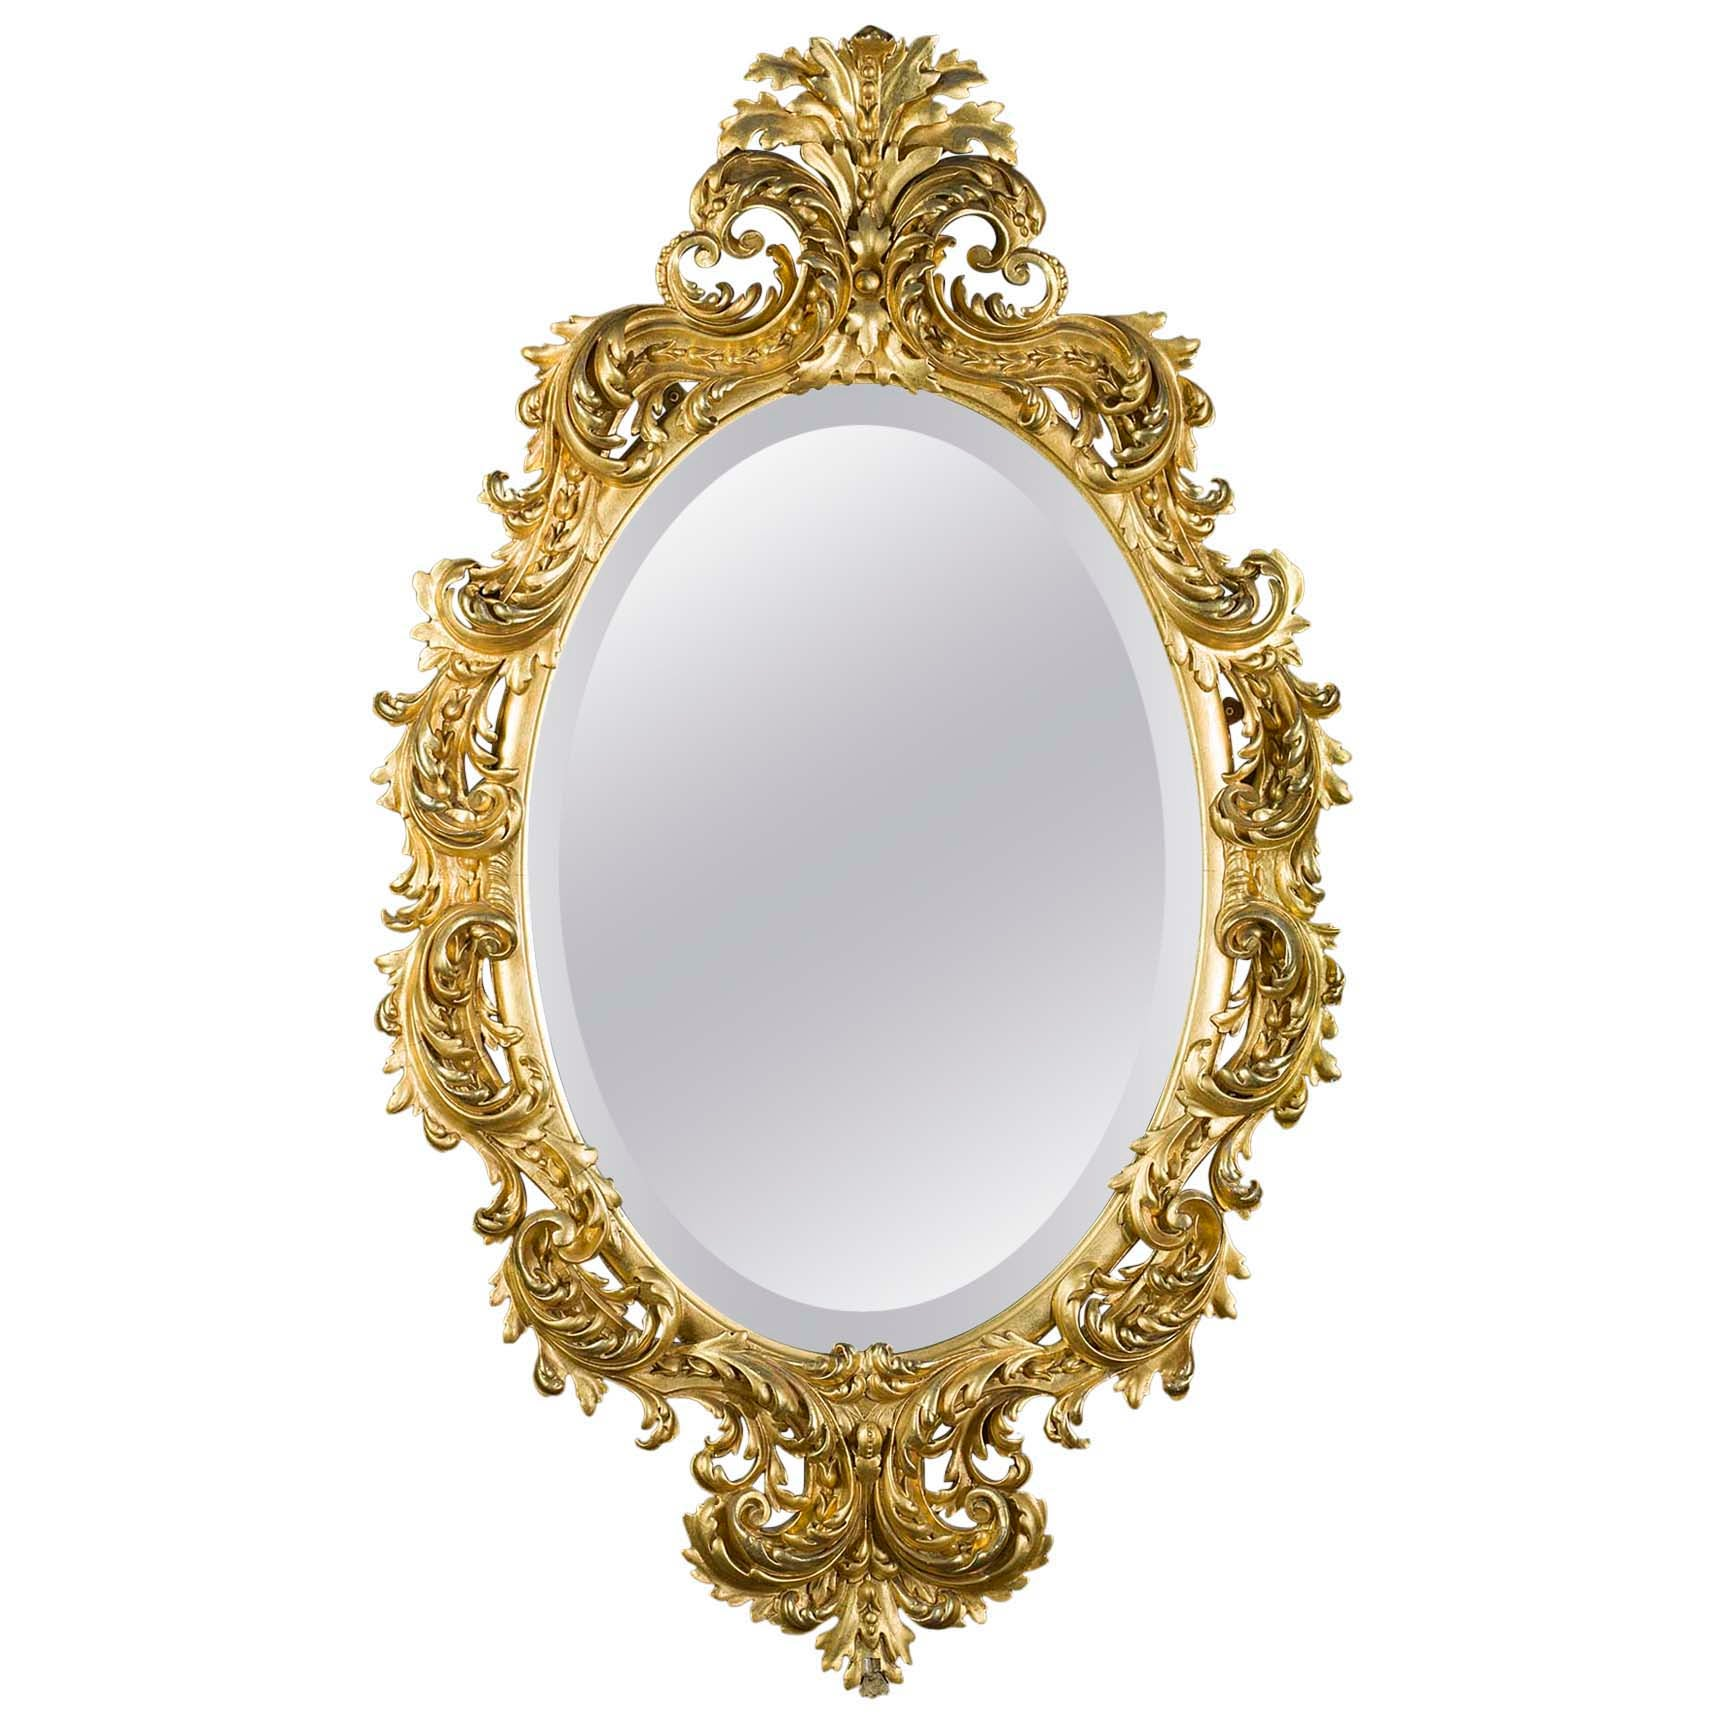 Ornate French Rococo Style Giltwood Mirror, 19th Century